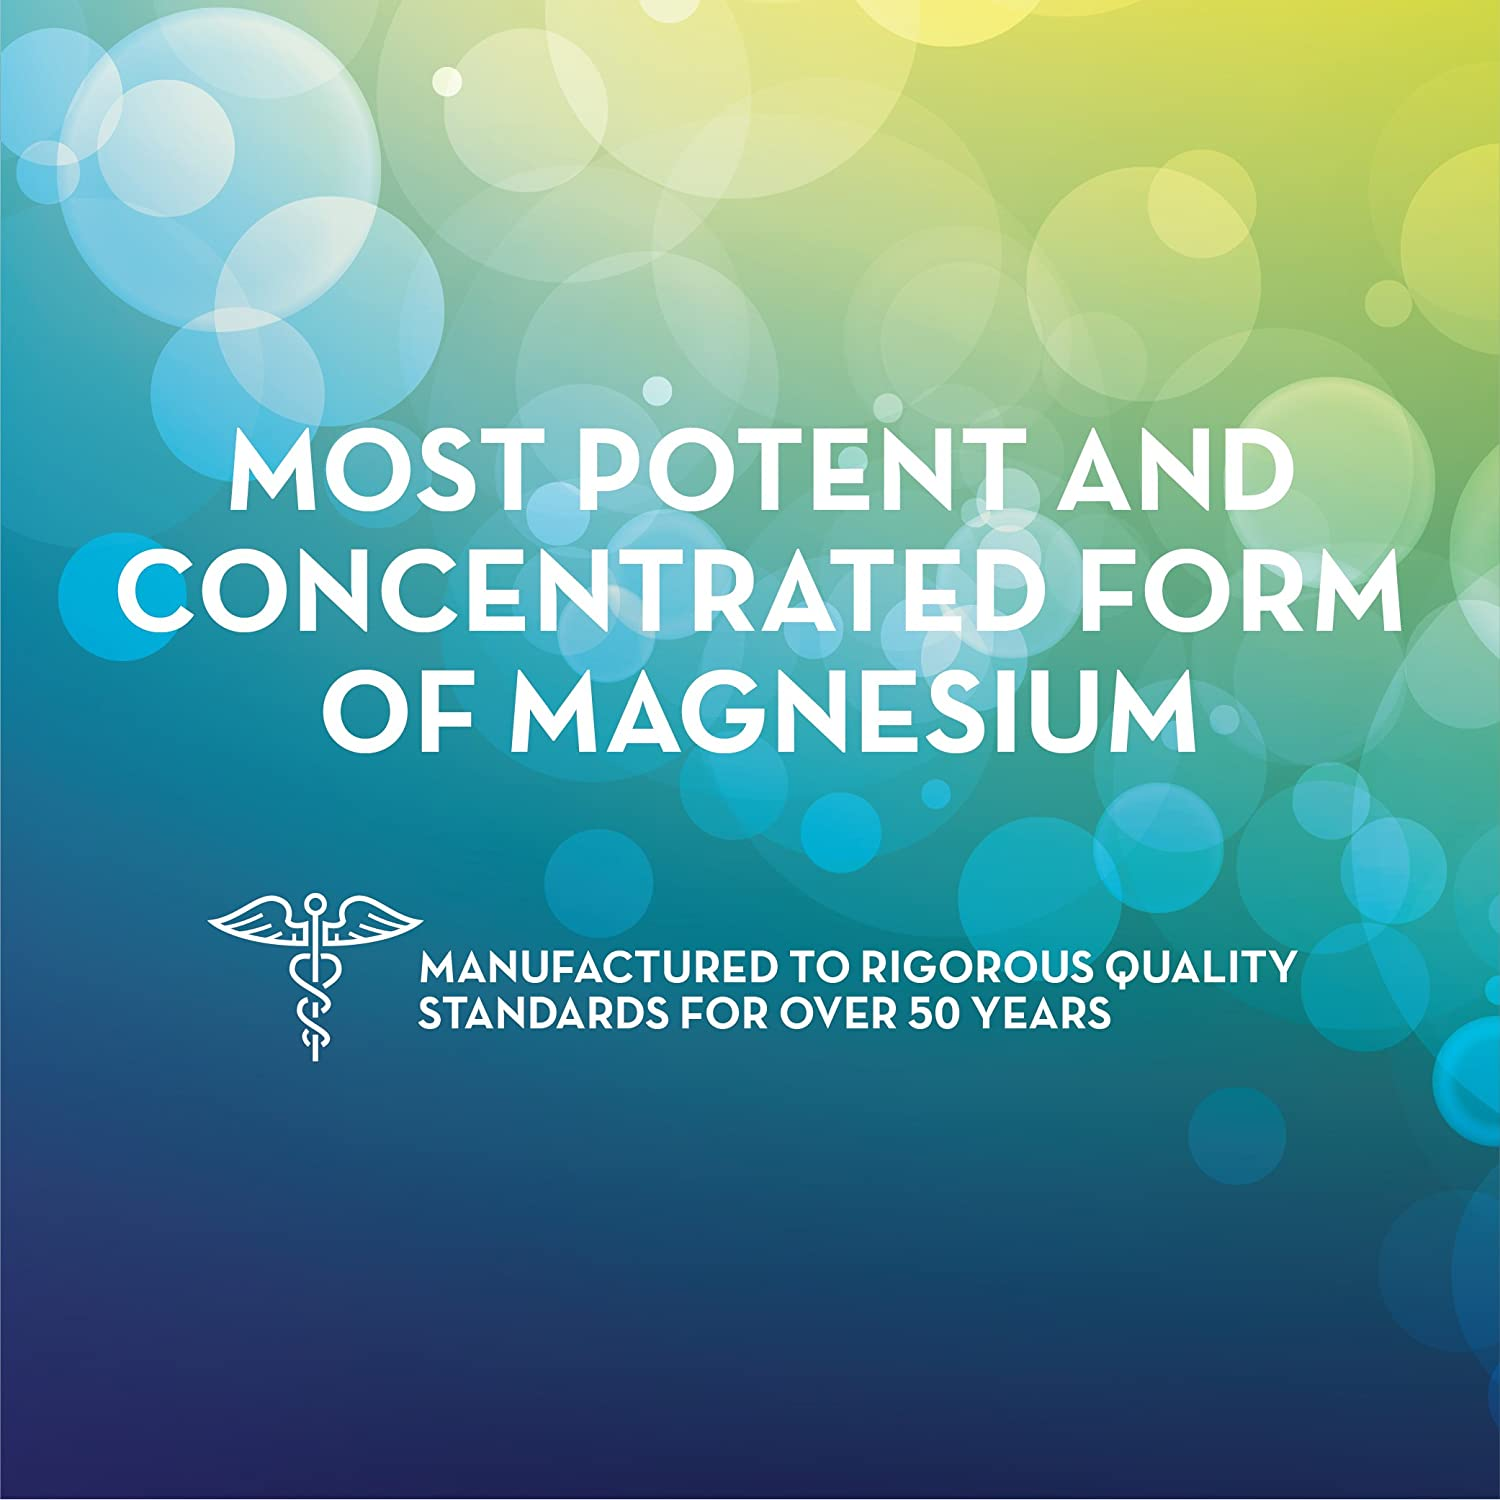 Mag-Ox 400 Magnesium Mineral Dietary Supplement Tablets, 483 mg Magnesium Oxide, 240 Count, Pharmaceutical Grade: Health & Personal Care